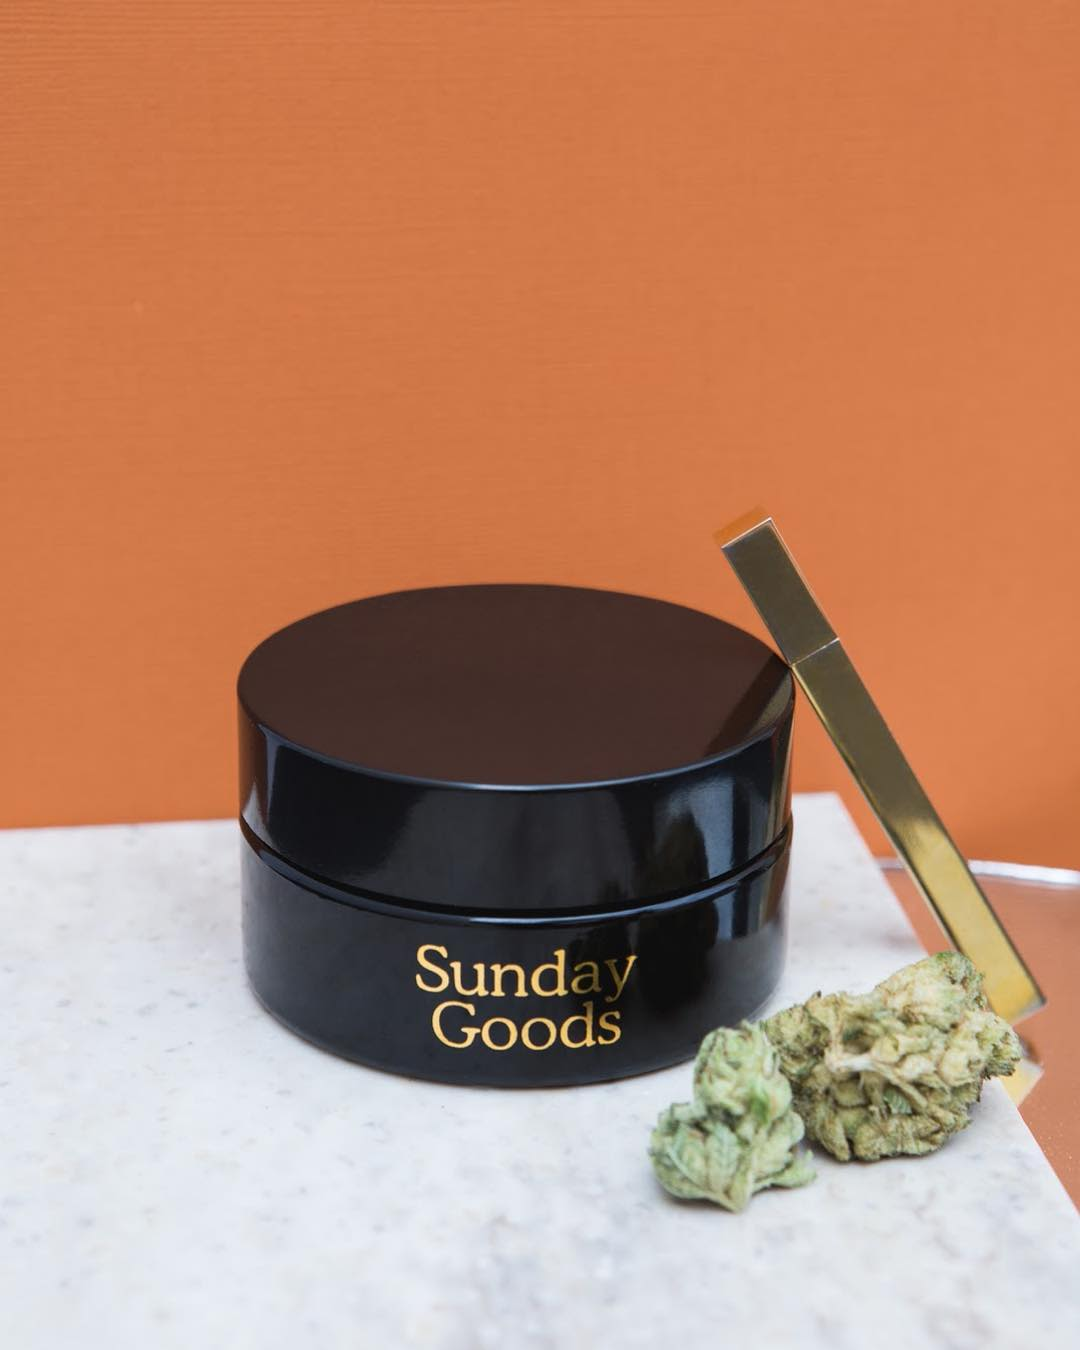 Sunday Goods ࿊ Creative Branded Content